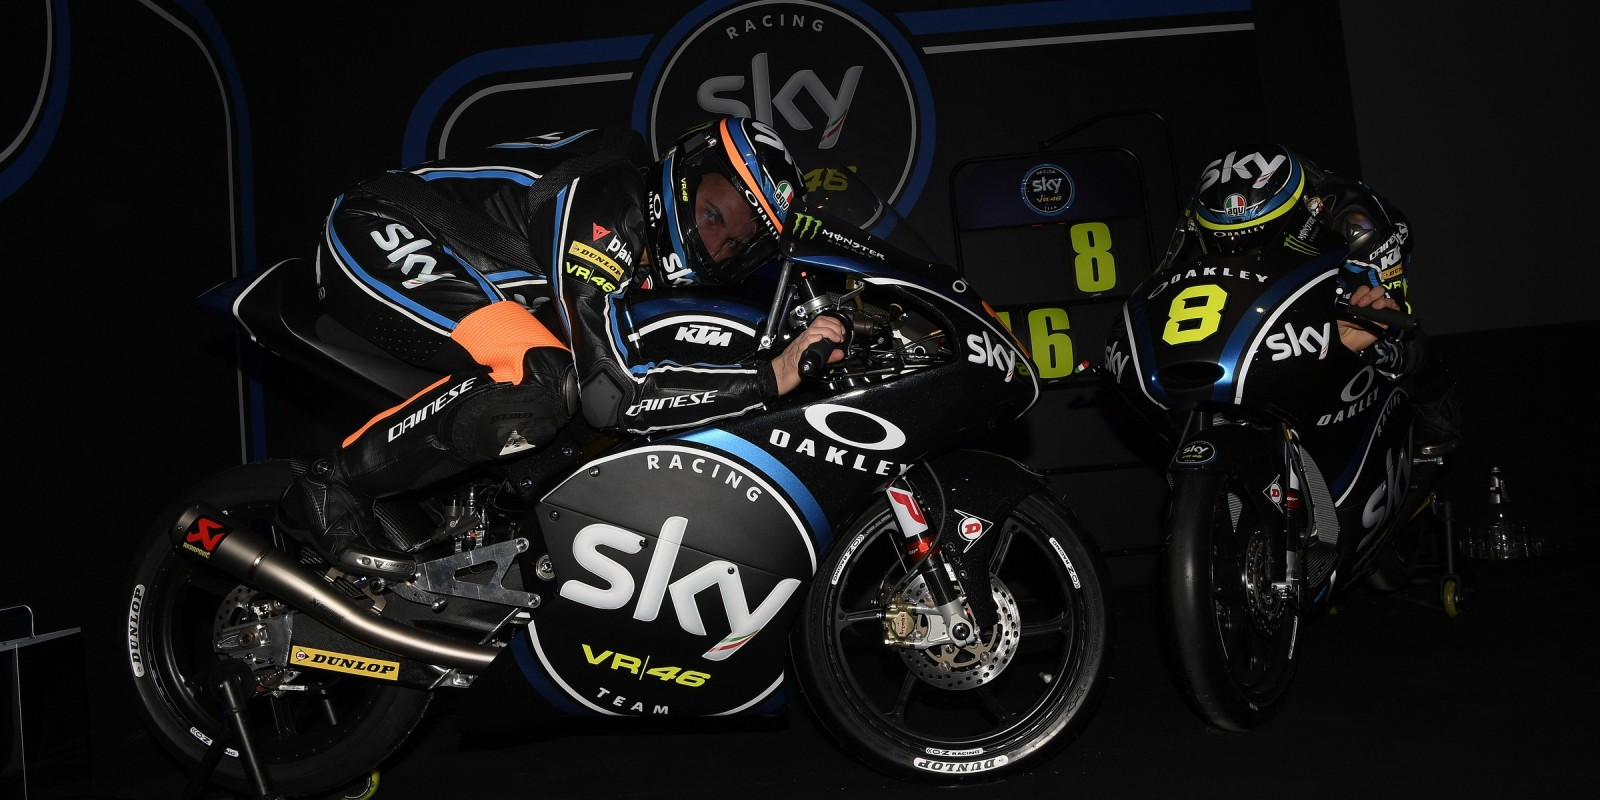 Migno at the 2017 Sky Racing Team VR46 launch in Milan